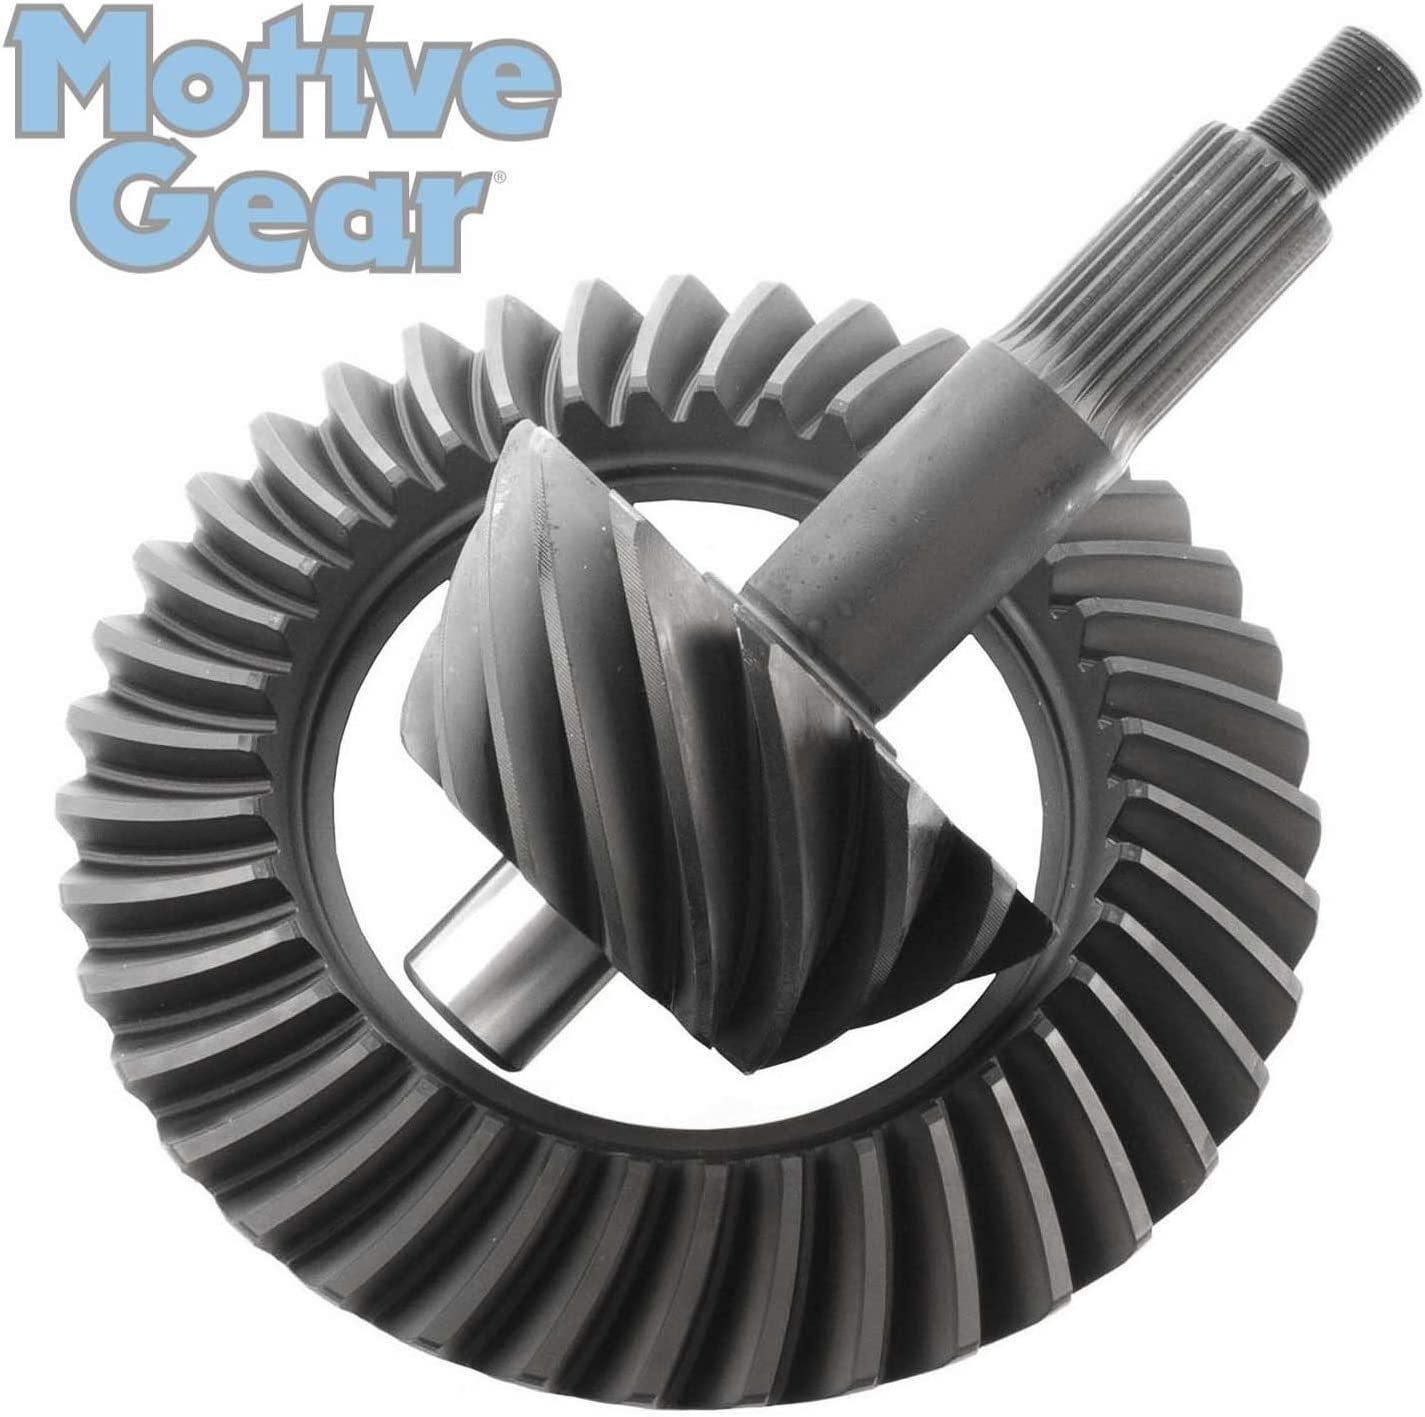 Motive Gear F890300 9 Rear Ring and Pinion for Ford (3.00 Ratio) [並行輸入品]